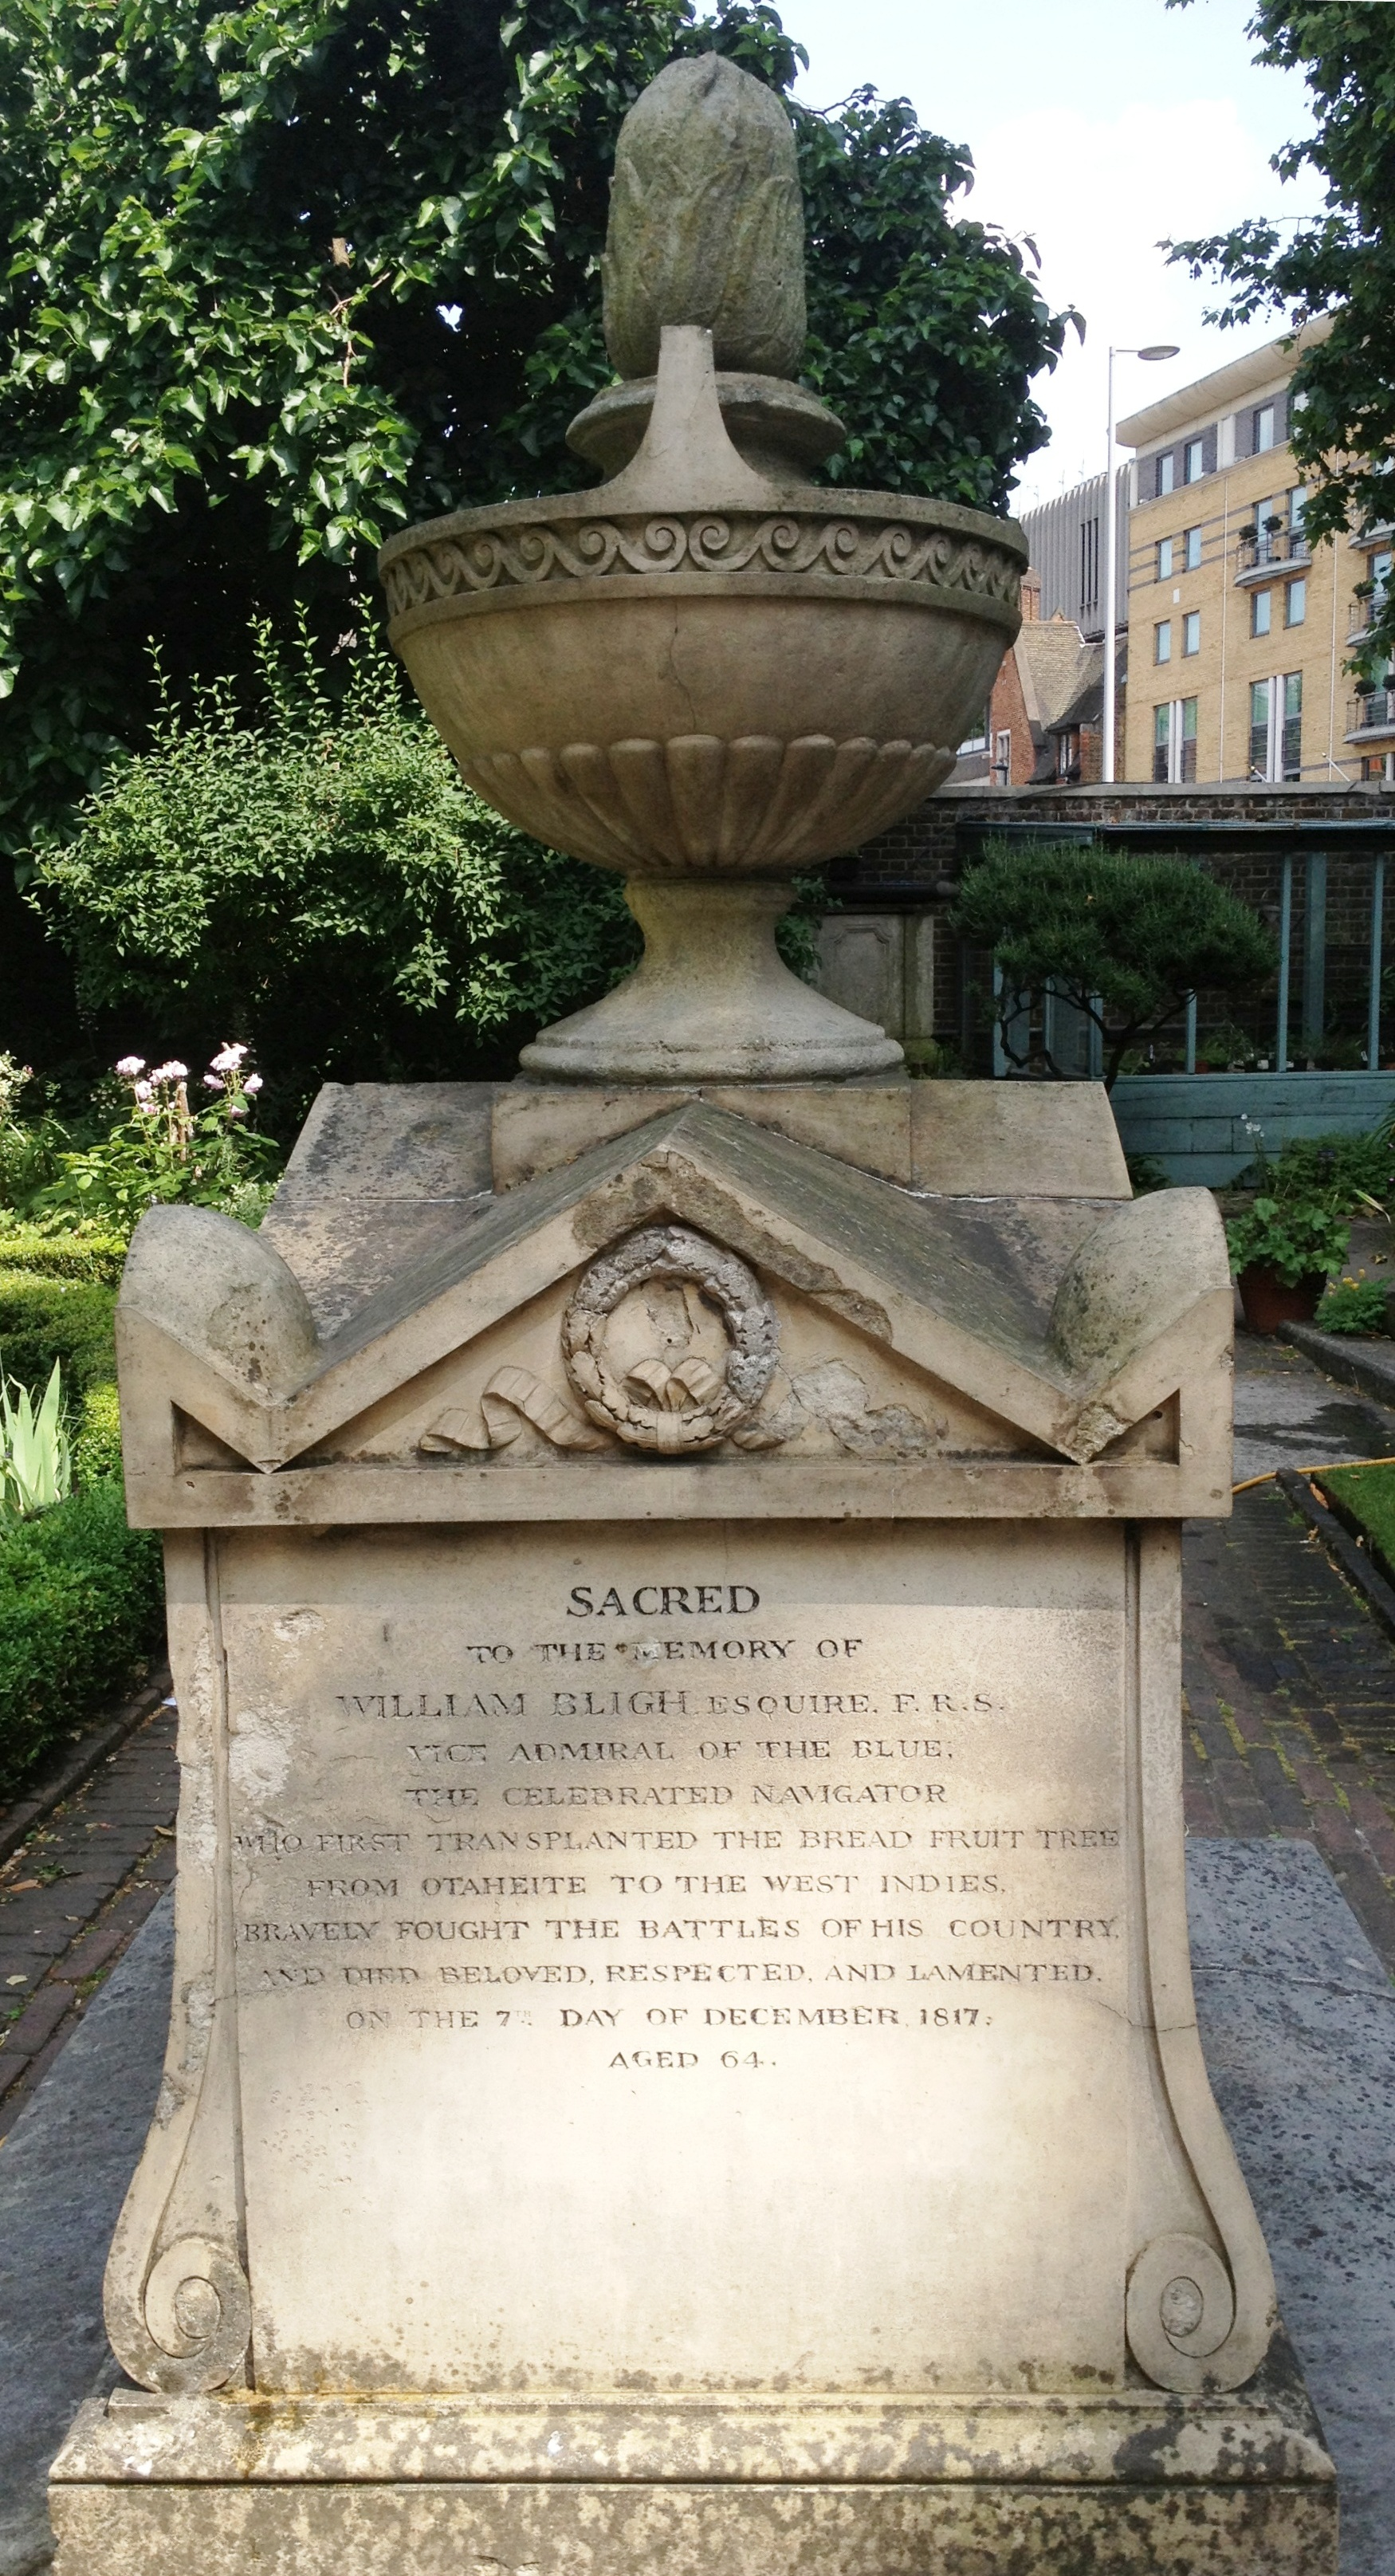 The grave of William Bligh, The Garden Museum garden (formerly St Mary's) - kenningtonrunoff.com